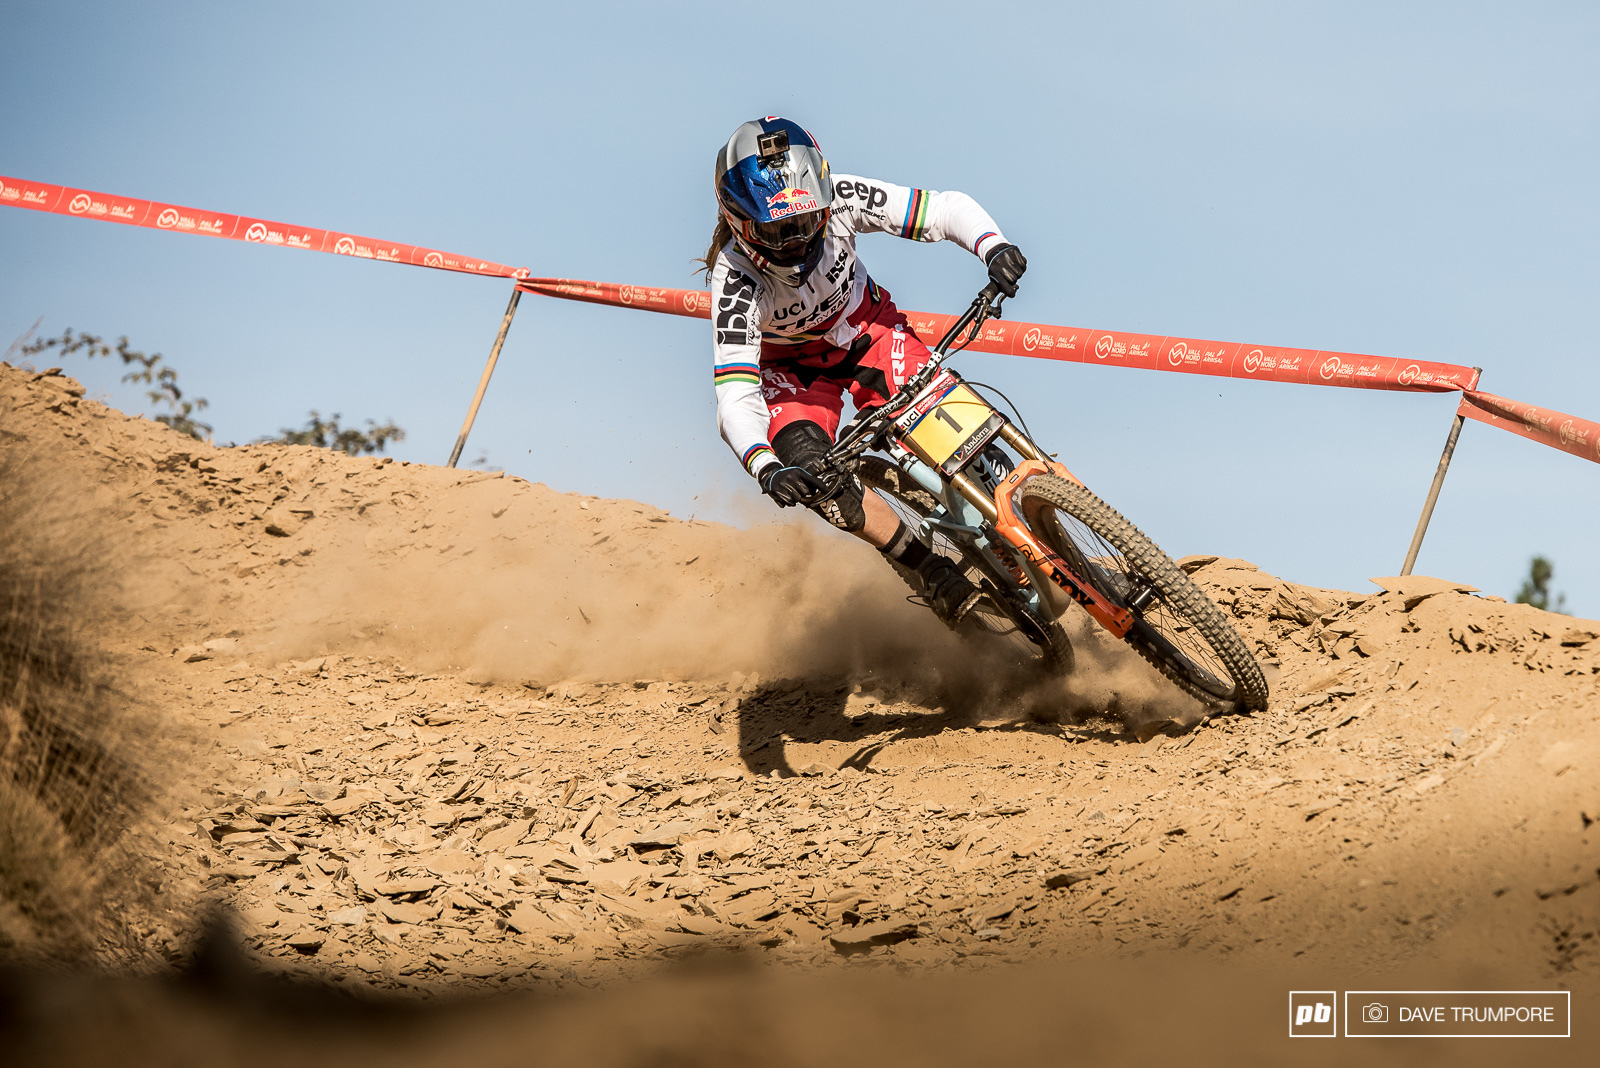 Pure domination once again from Rachel Atherton.